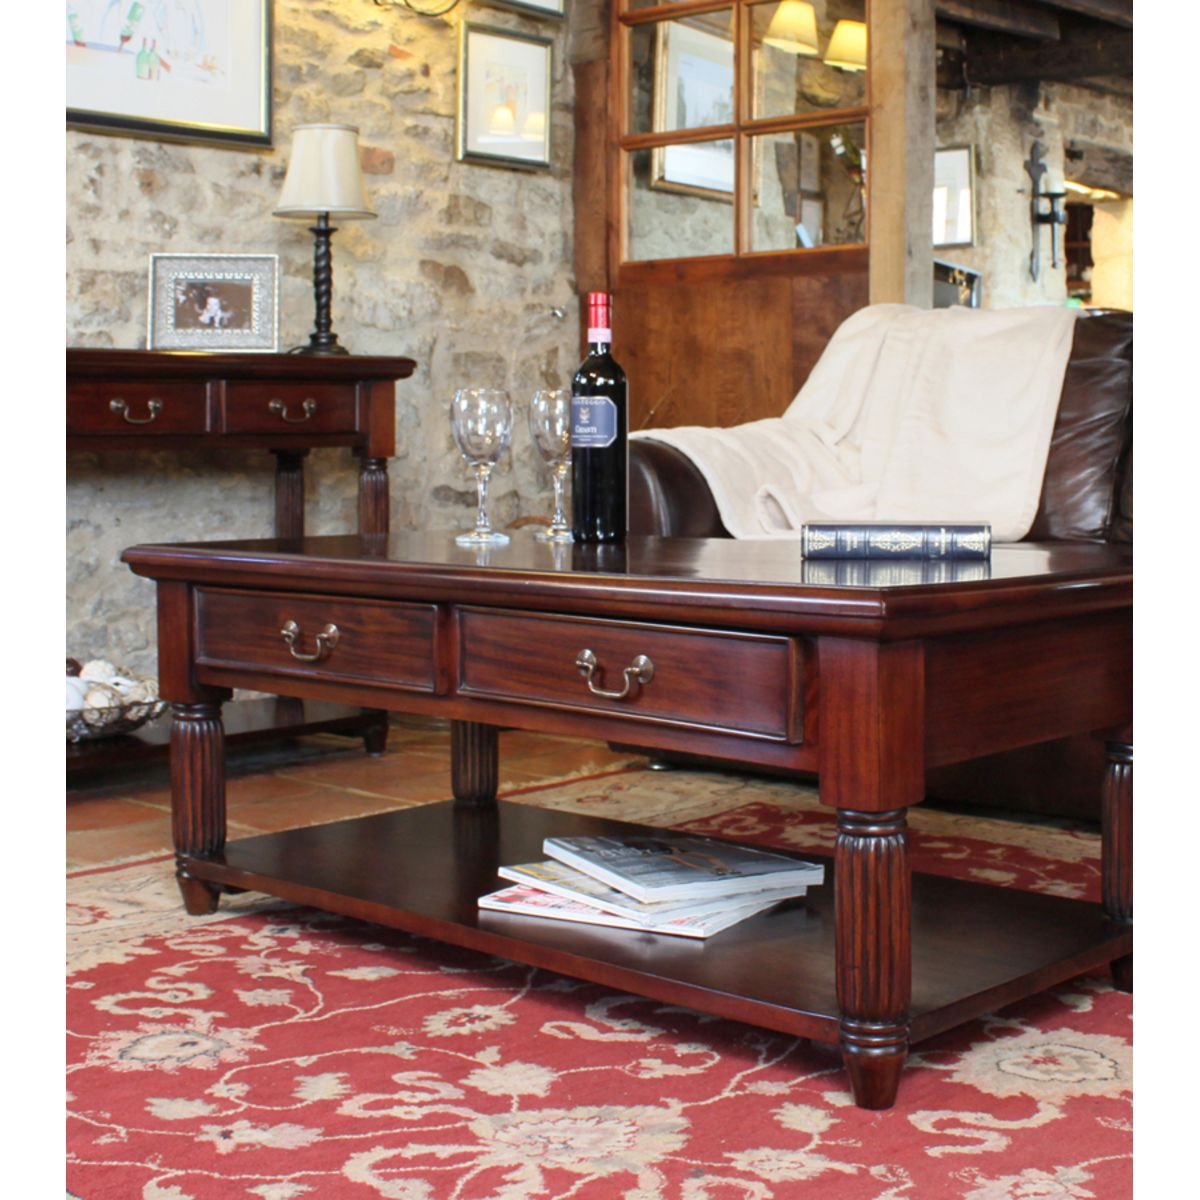 Mahogany Coffee Table With Drawers La Roque Wooden